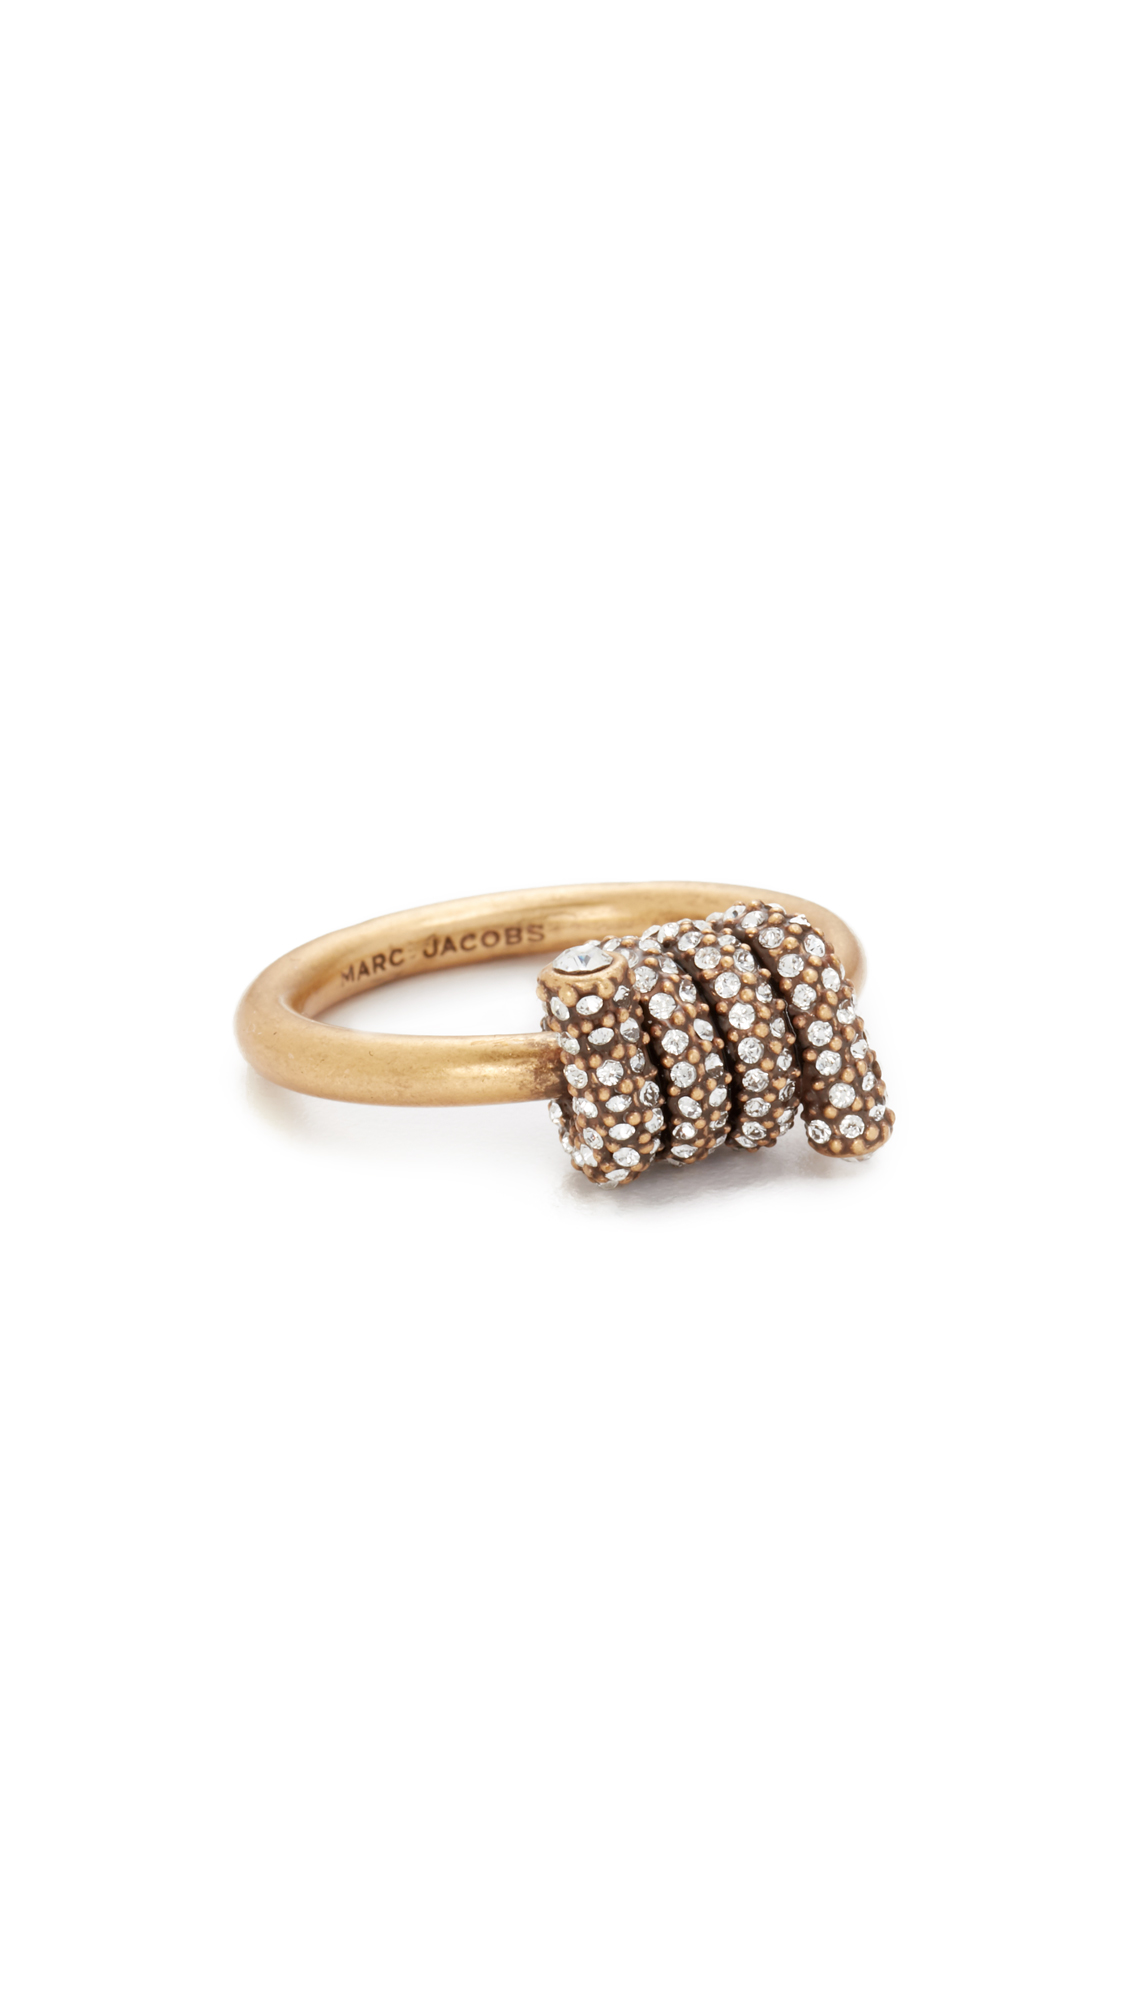 marc jacobs female 220183 marc jacobs pave twisted ring crystalantique gold